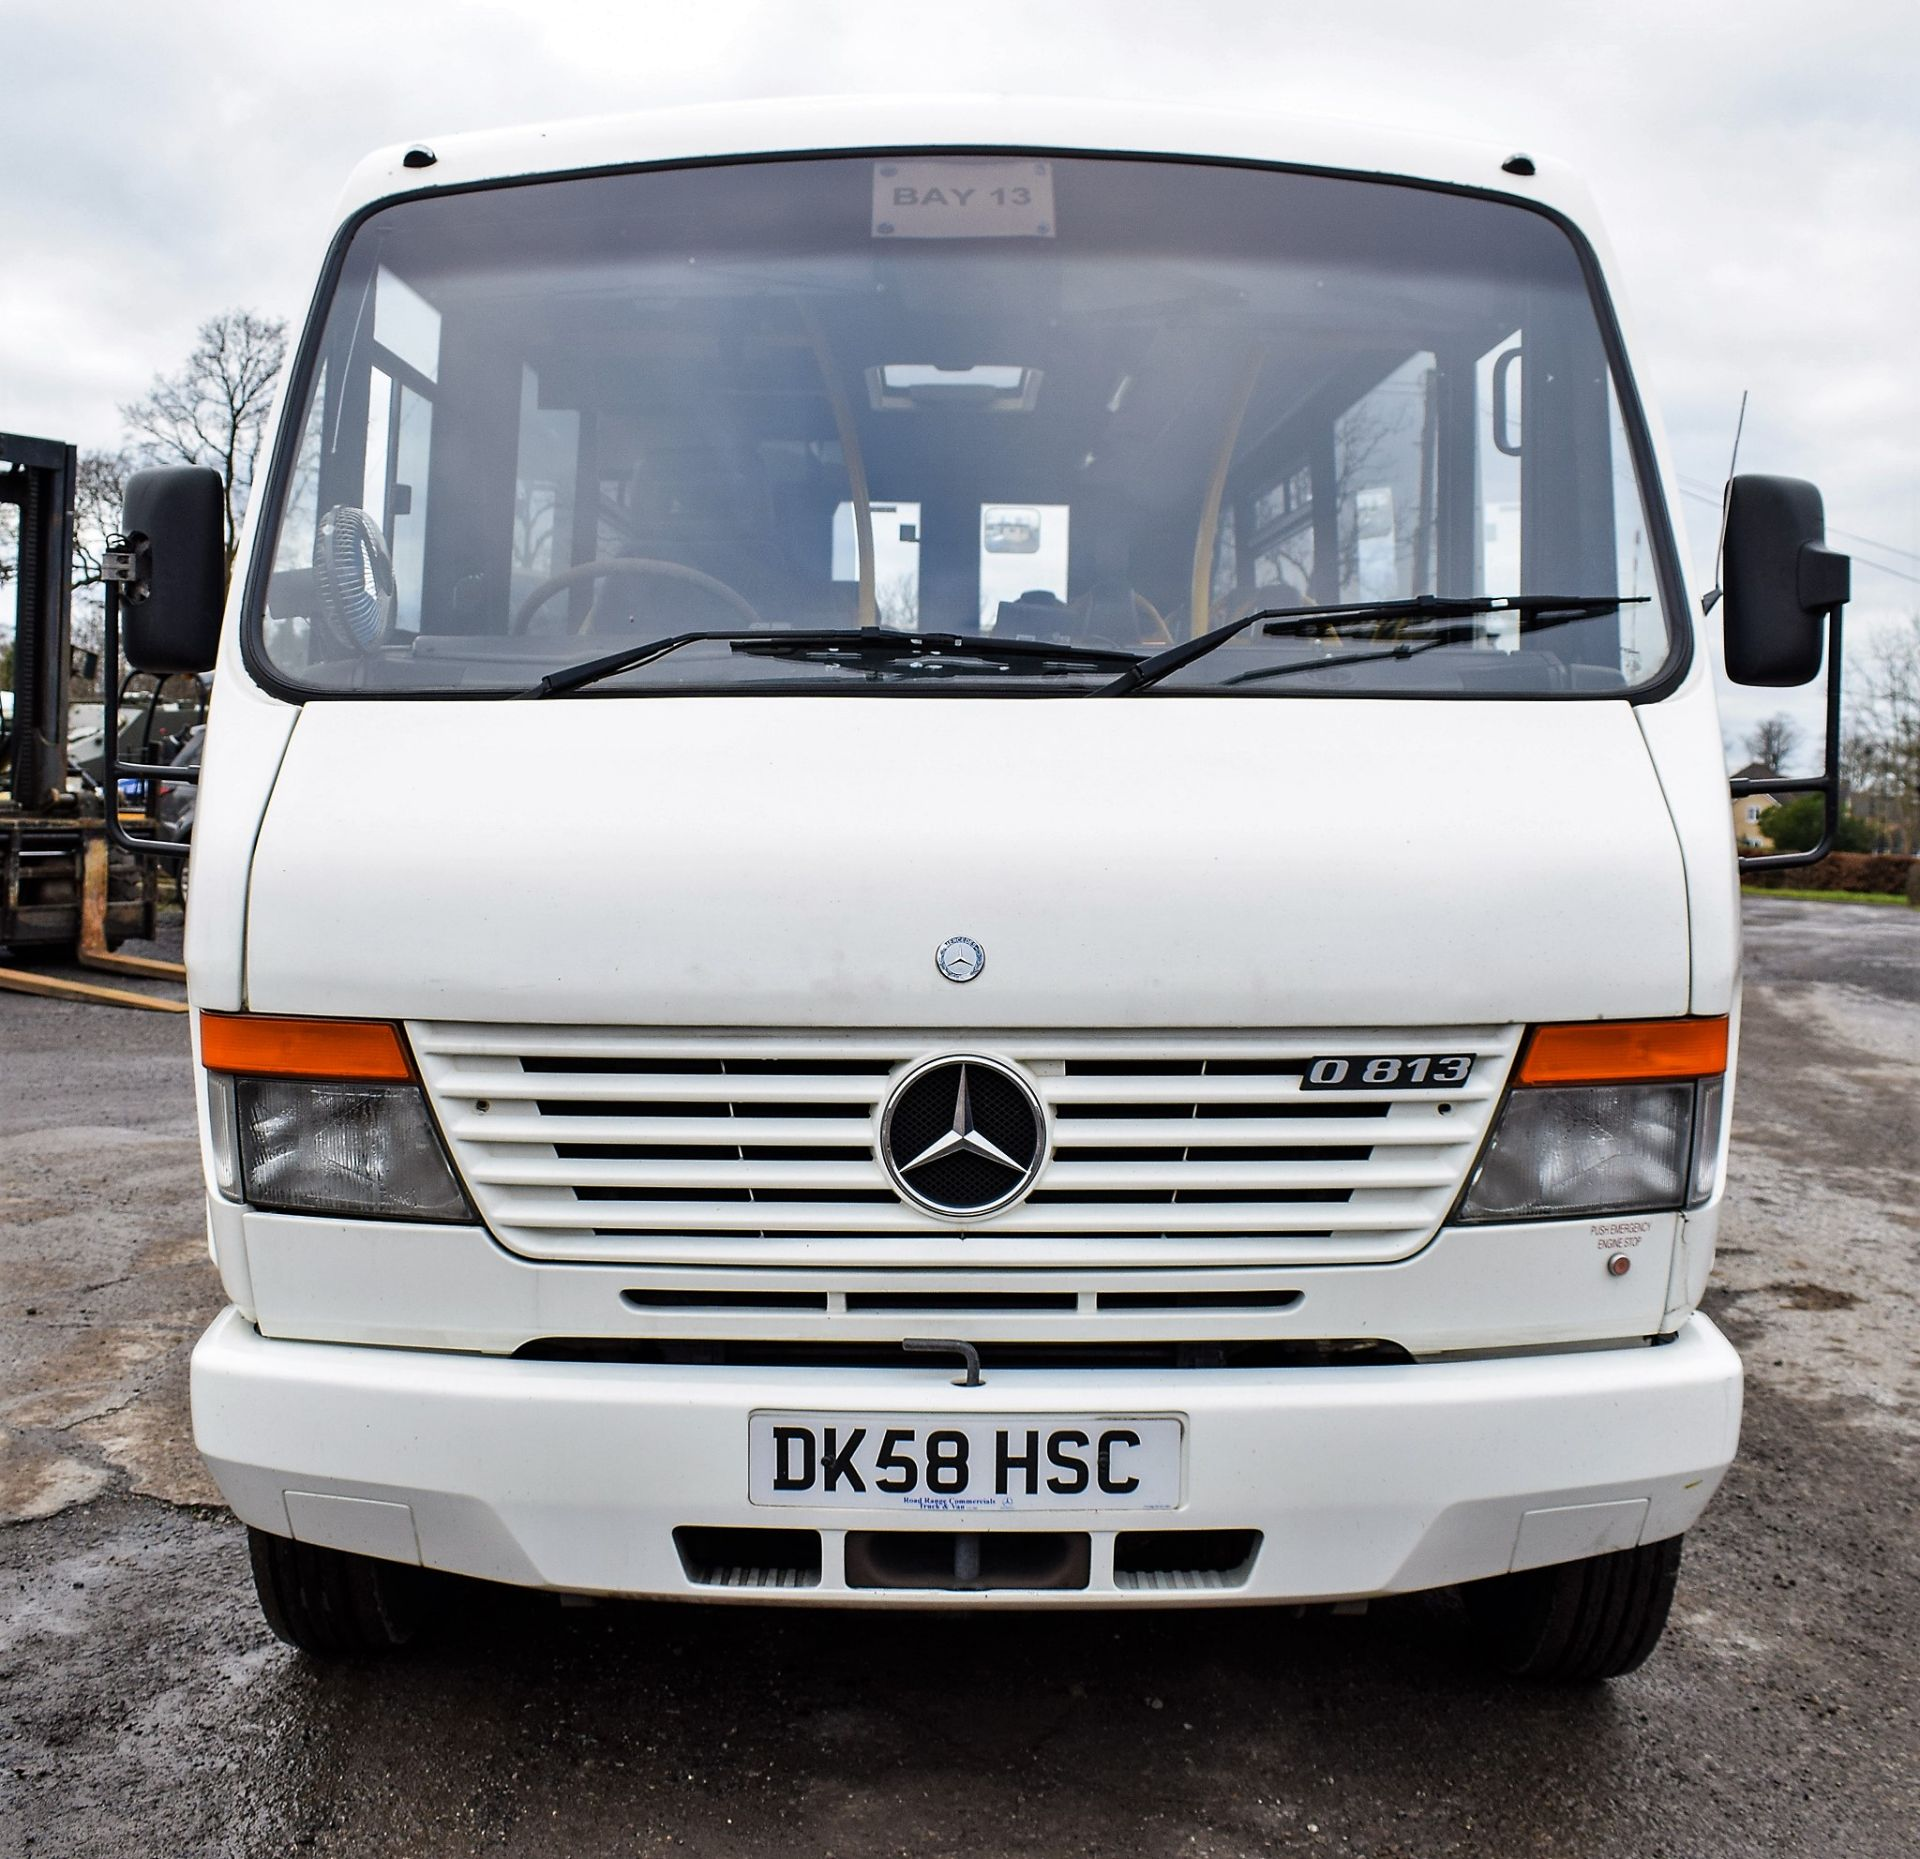 Lot 17C - Mercedes Benz O 813 24 seat mini bus Registration Number: DK58 HSC Date of Registration: 13/10/